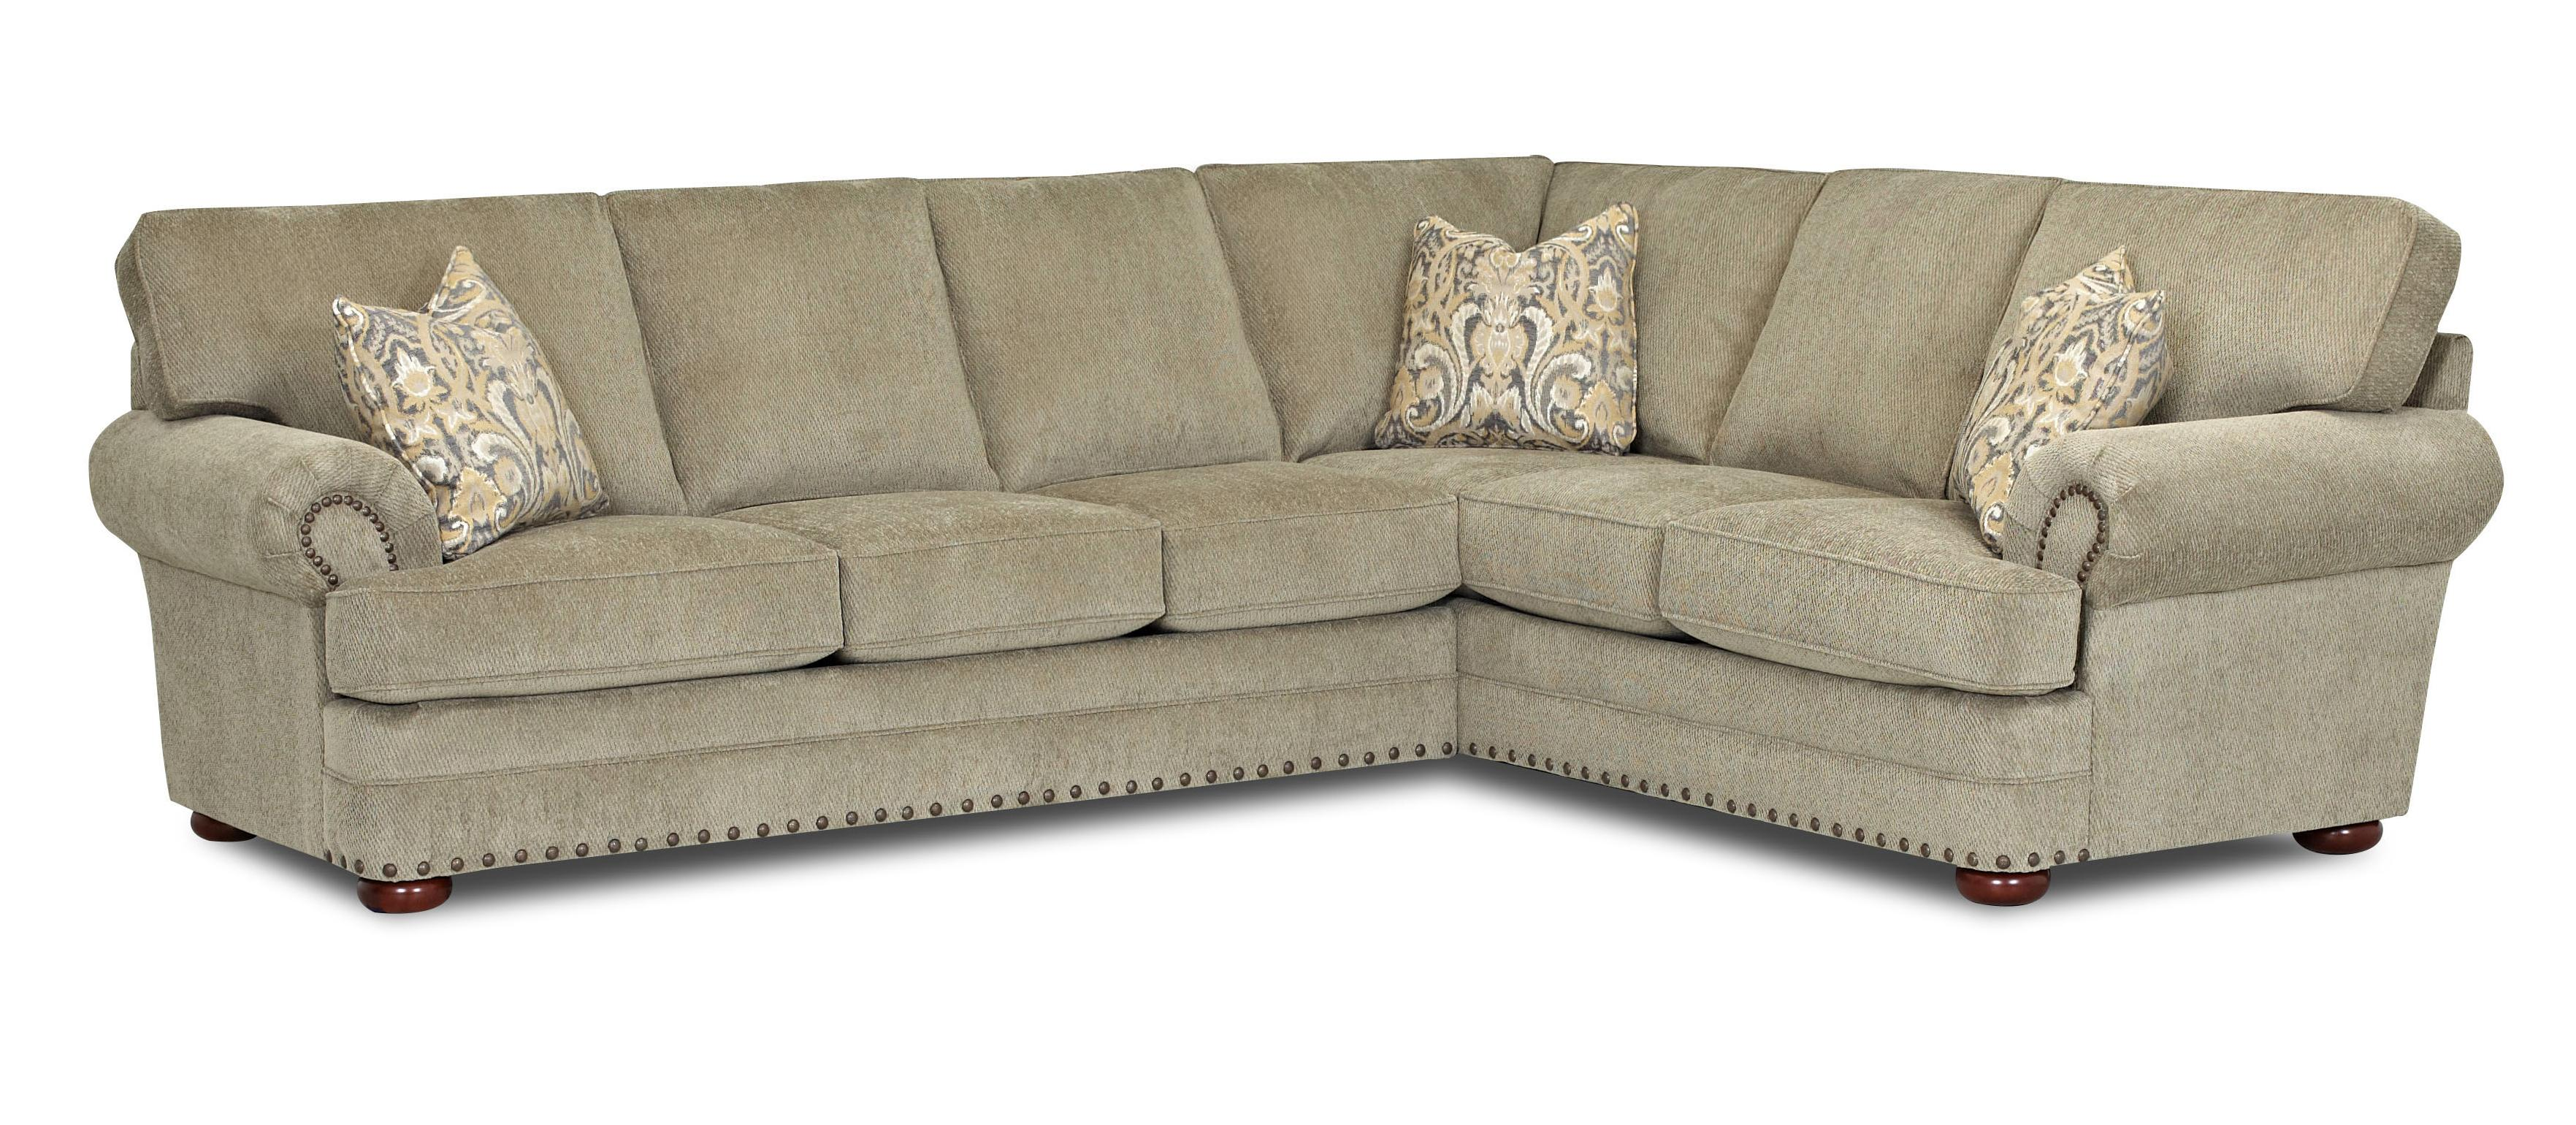 Traditional 2 Piece Sectional Sofa by Klaussner